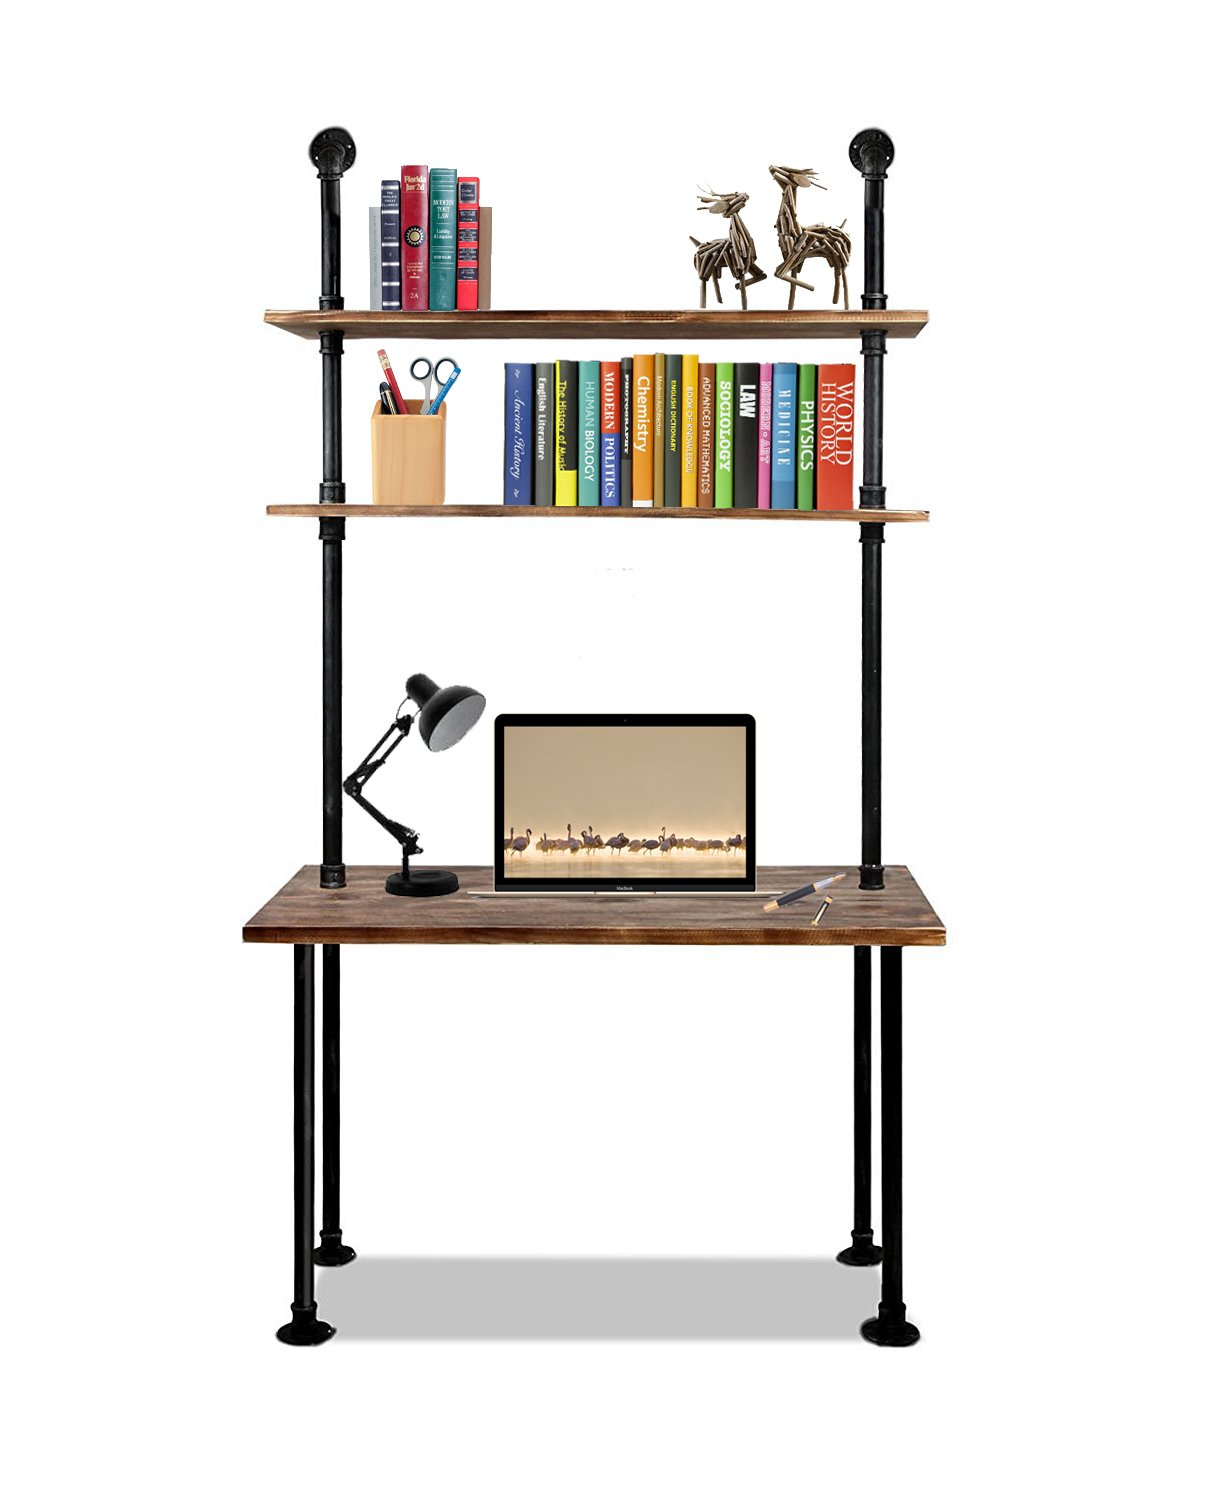 Articial 79-inch Industrial Laptop Desk Solid Wood Computer Desk Wall Pipe Desk with Shelves Computer Table for Home Office